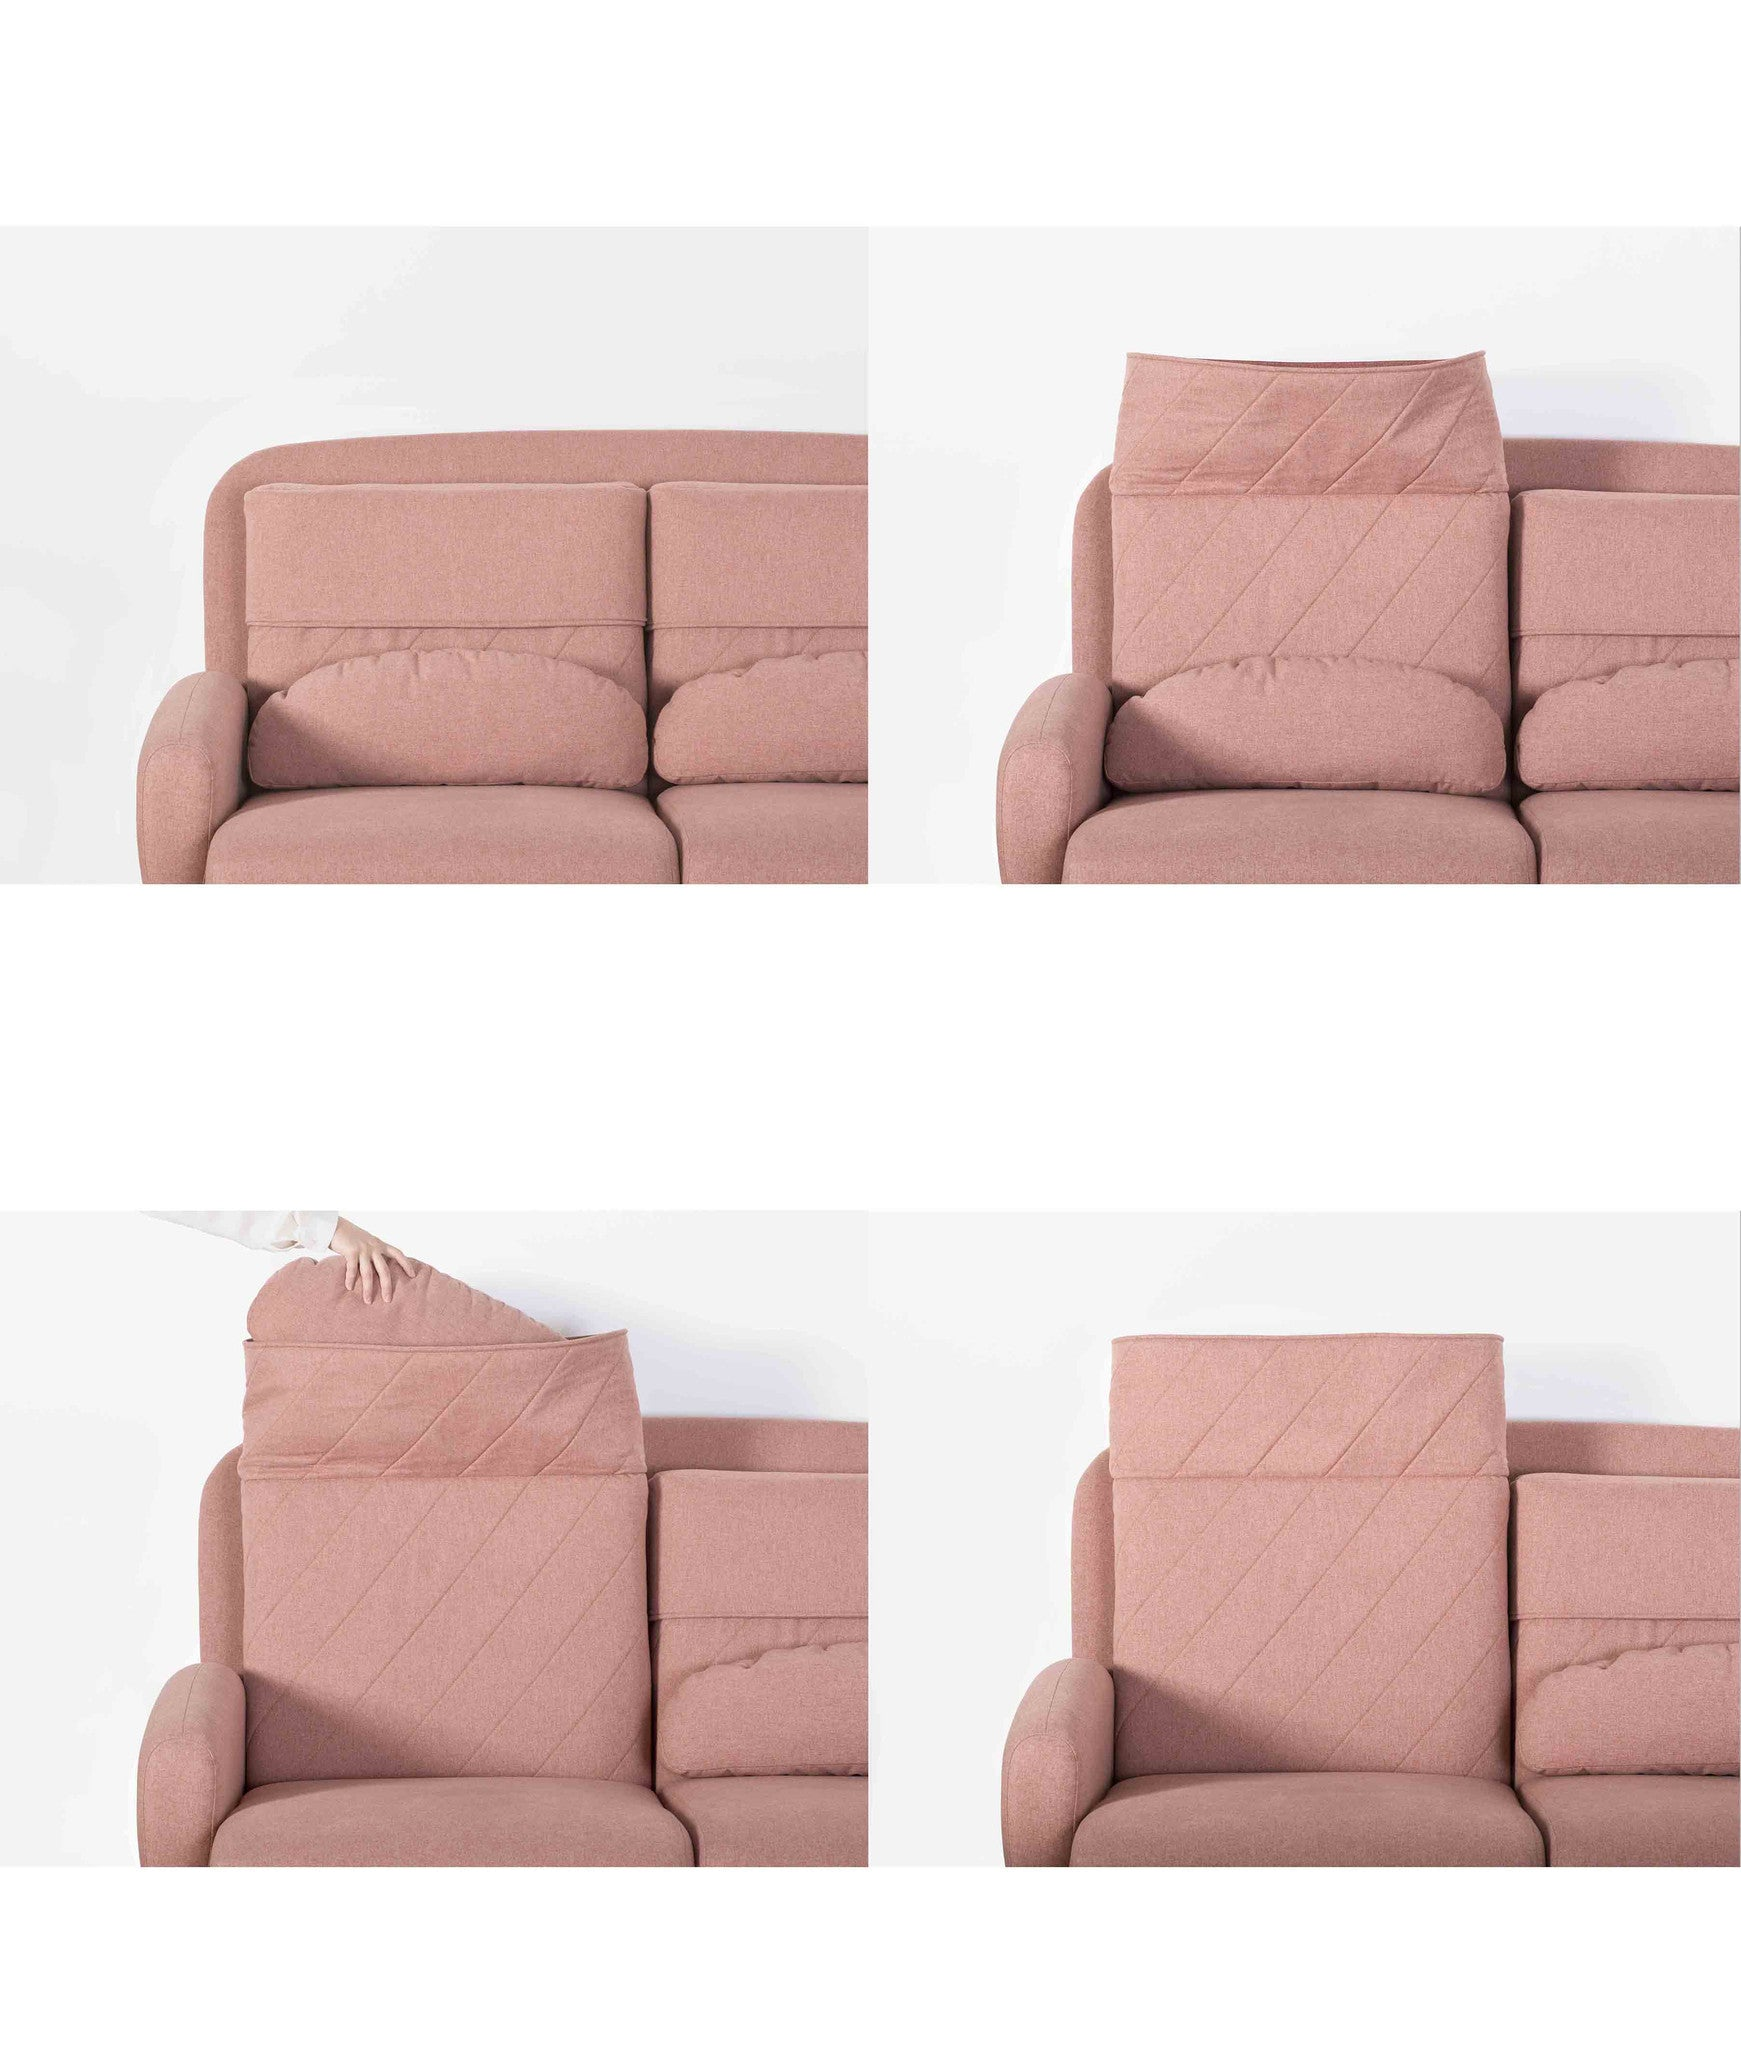 TURTLENECK SOFA - DOUBLE detail